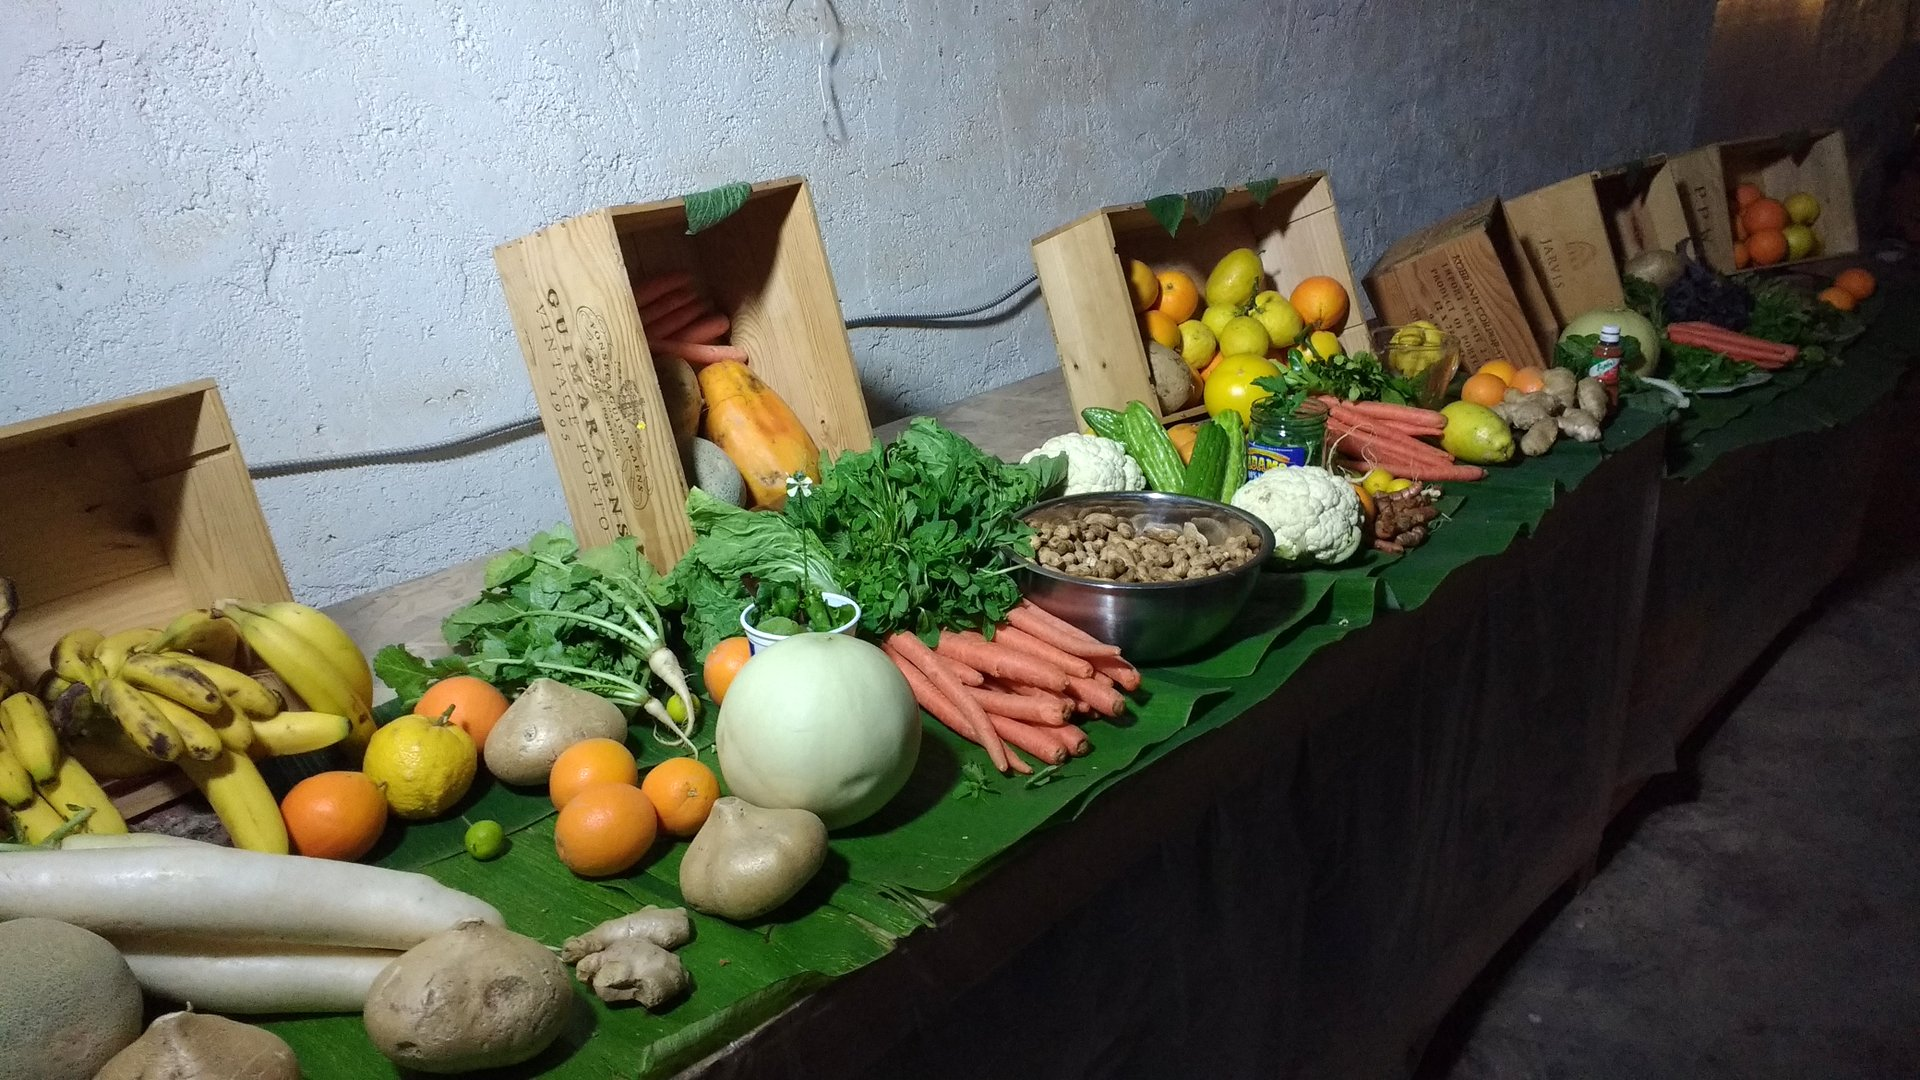 fruit & vegetables on a long wooden platform against a wall